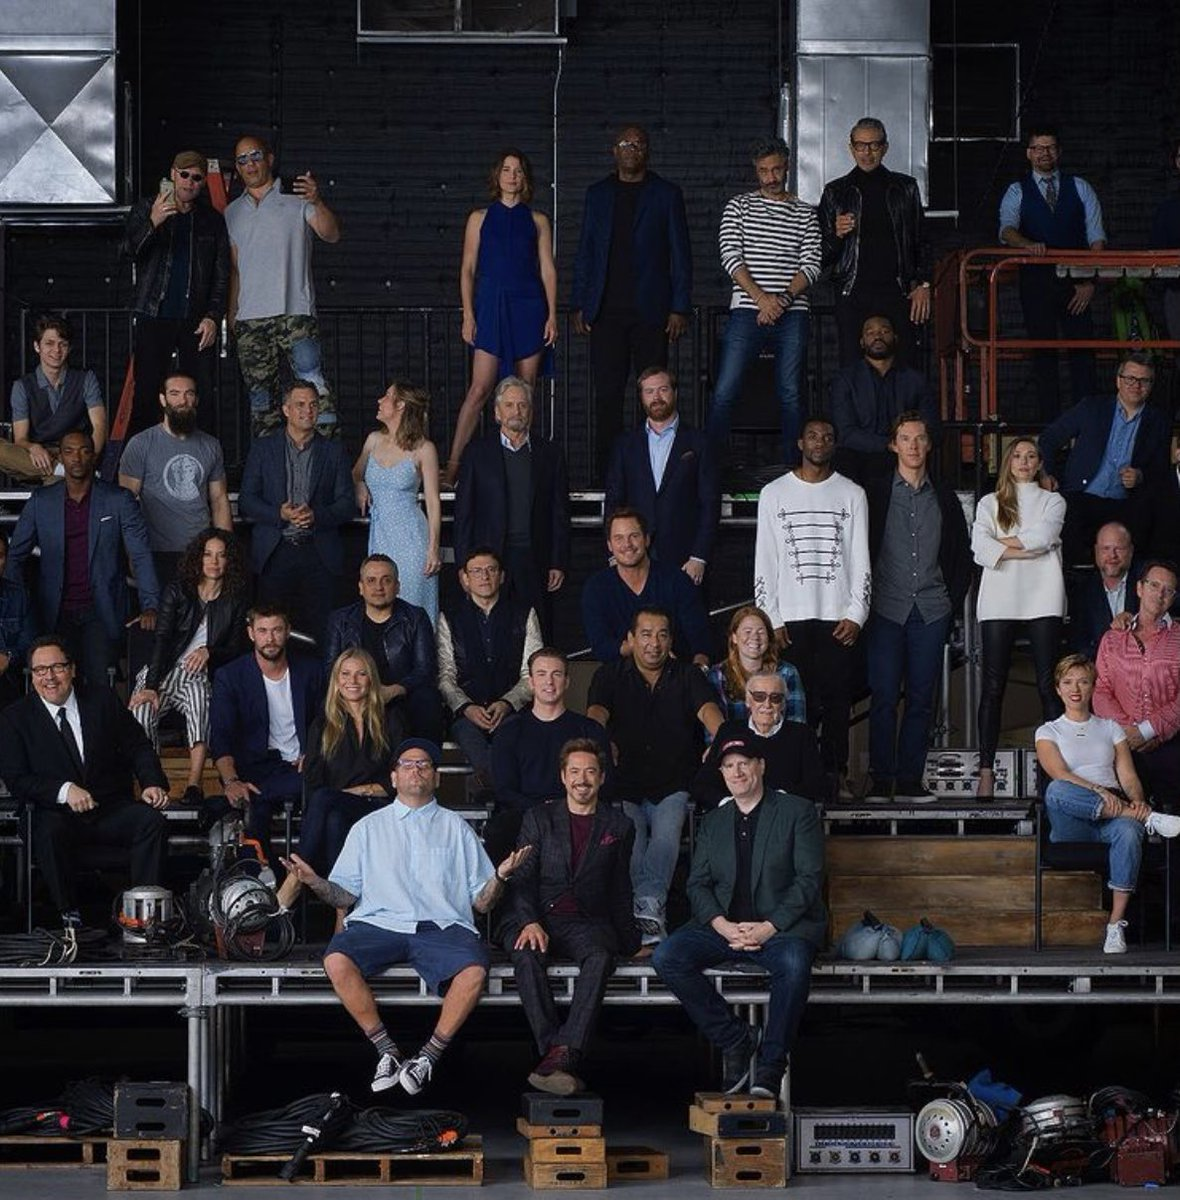 Jimmy Rich shared this throwback pic from that epic Marvel family photo shoot. I'd give anything to sit where he's sitting. So many wonderful, talented people here. It's mind boggling! 🥰 #MarvelFamilyPhoto #Avengers #ScienceBros #MarkRuffalo #RobertDowneyJr #ThankYouAvengers